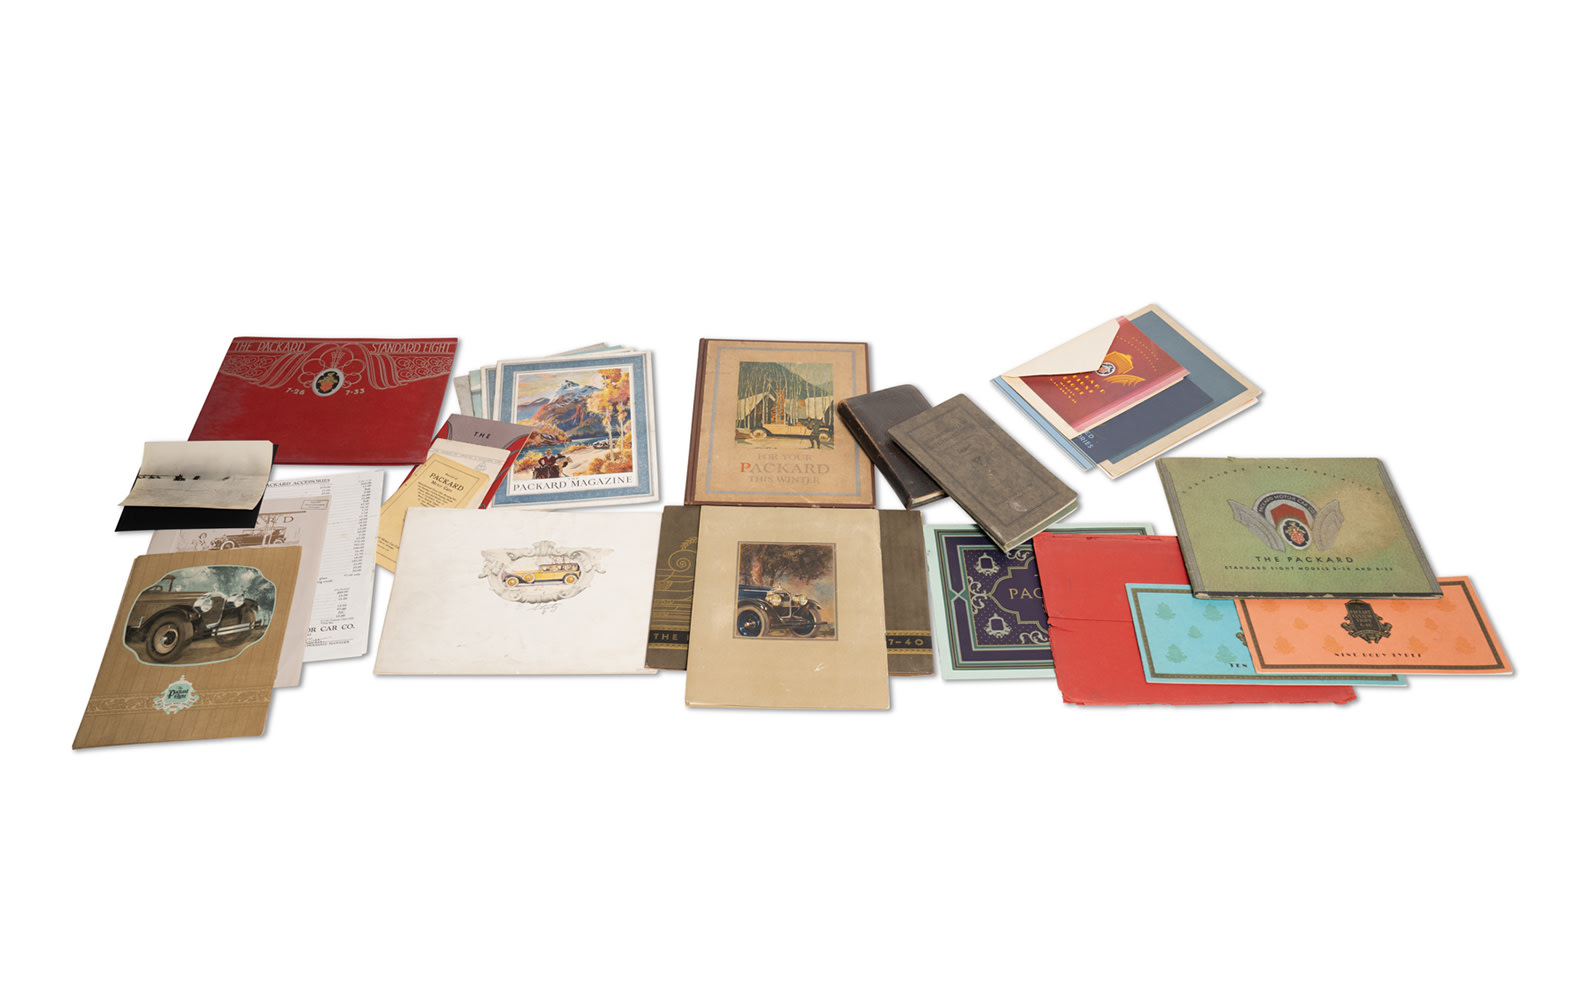 Assorted Packard Sales Literature, c. mid-1920s to early-1930s